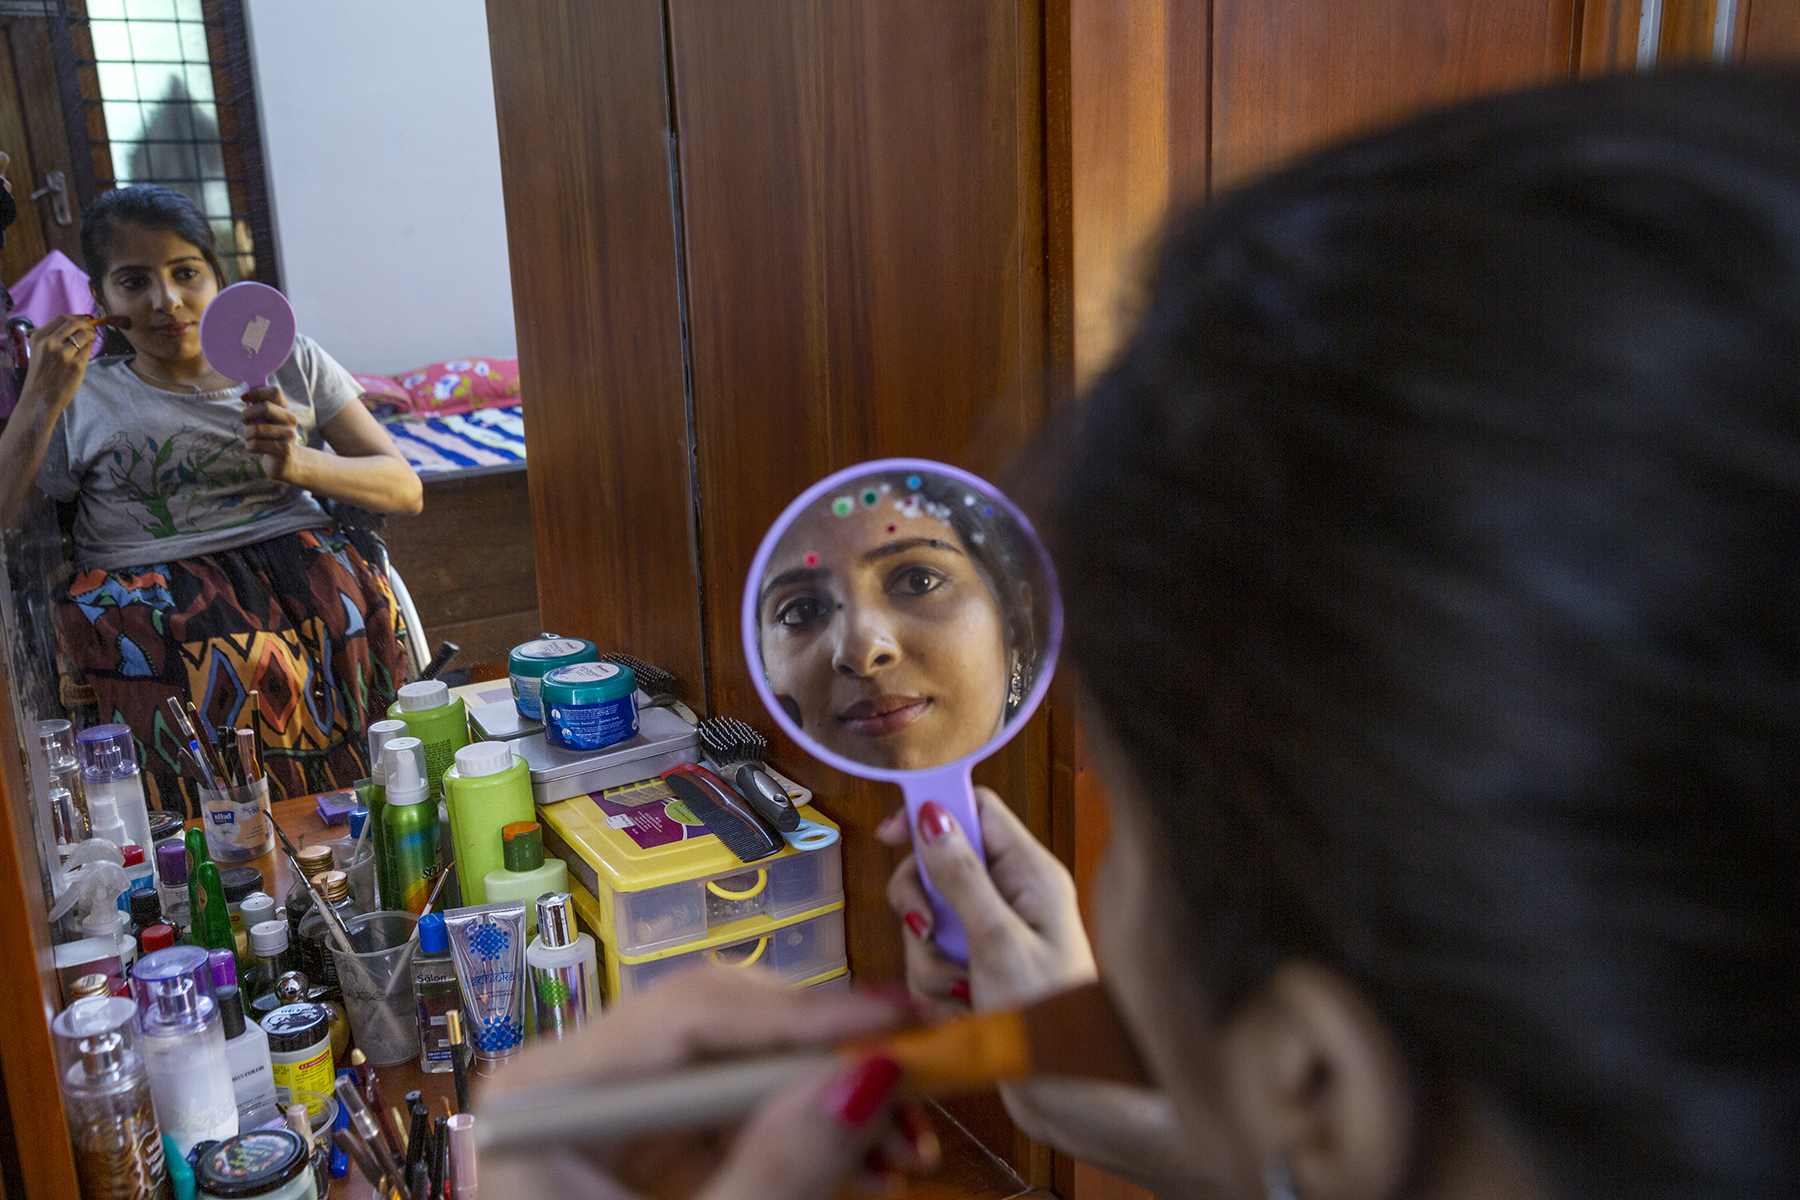 Anju Rani in grey half-sleeved T-shirt and multi-coloured skirt is reflected in a dressing table mirror. She is applying rouge on one cheek with a brush while holding a violet-framed hand mirror that reflects a close-up of her face. The dresser is crowded with cosmetics, a hair brush and a comb.